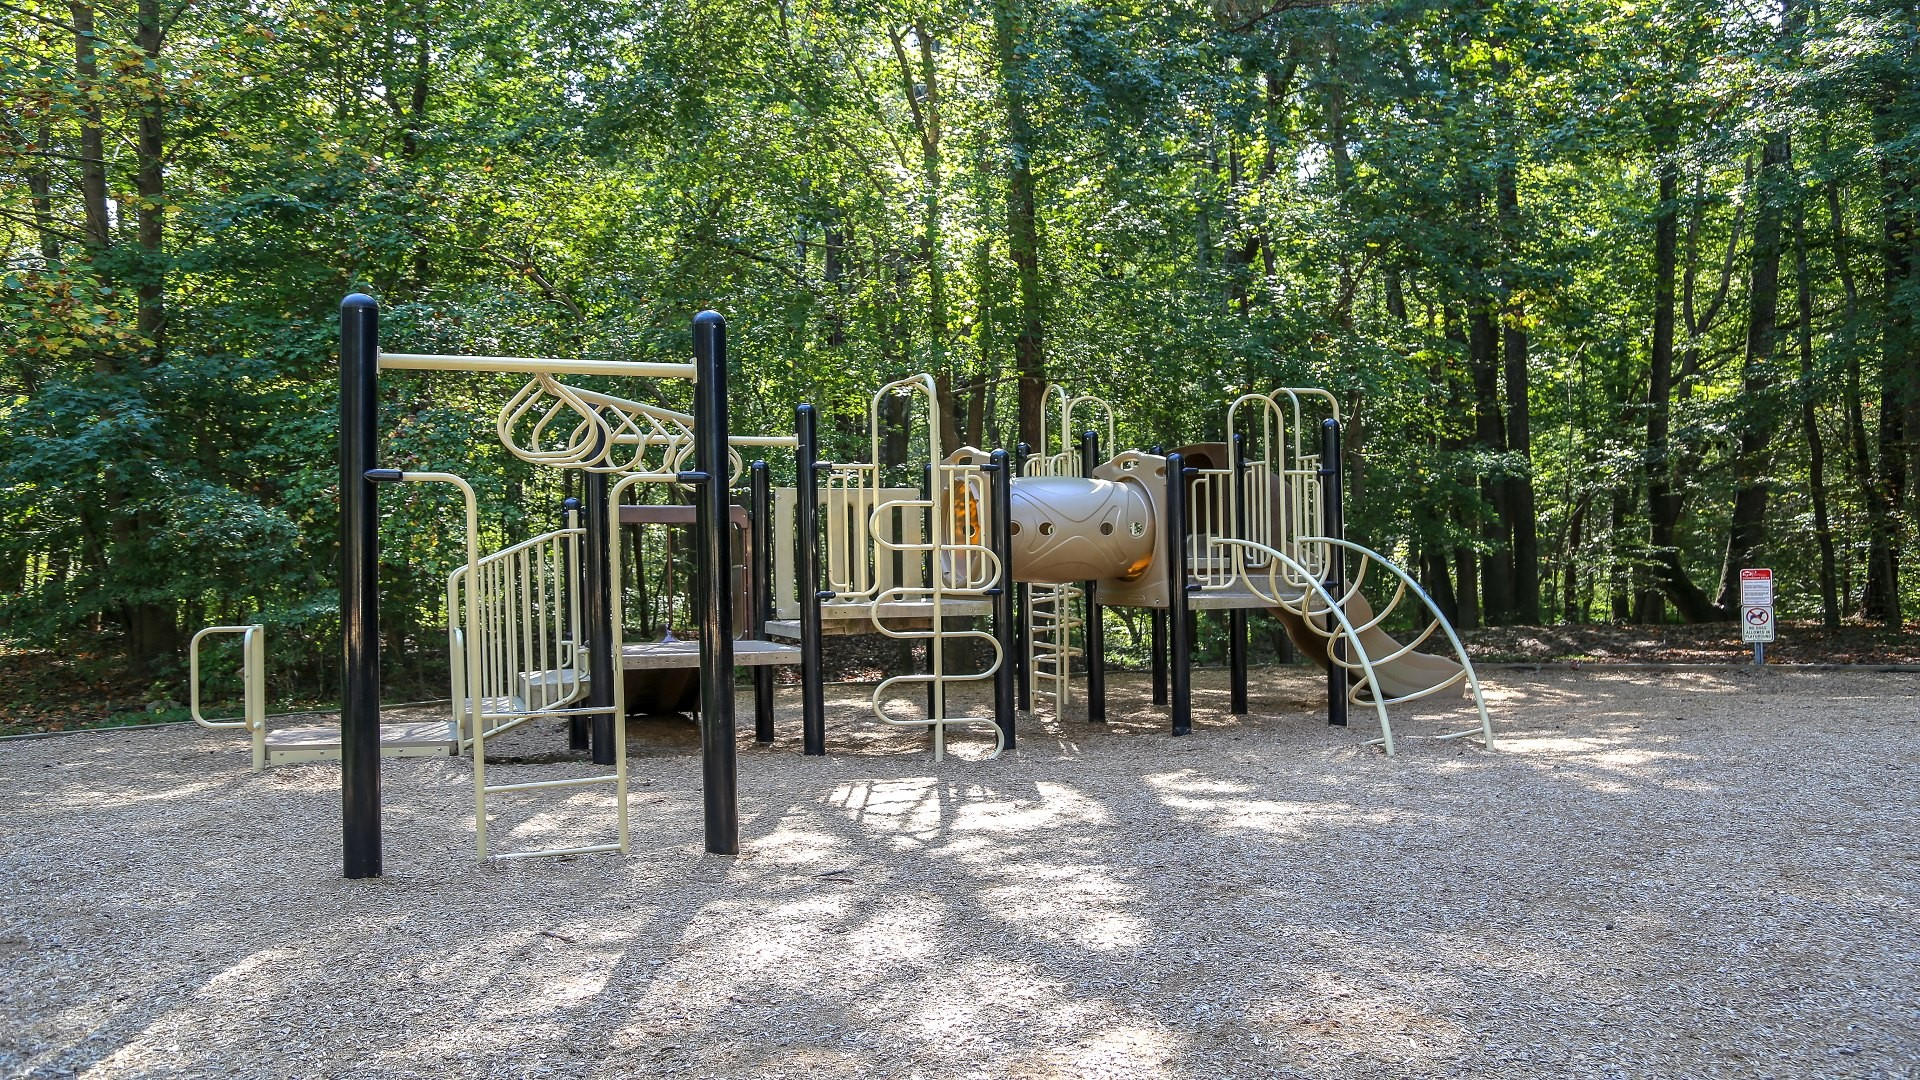 An outdoor large open playground with slides and monkey bars